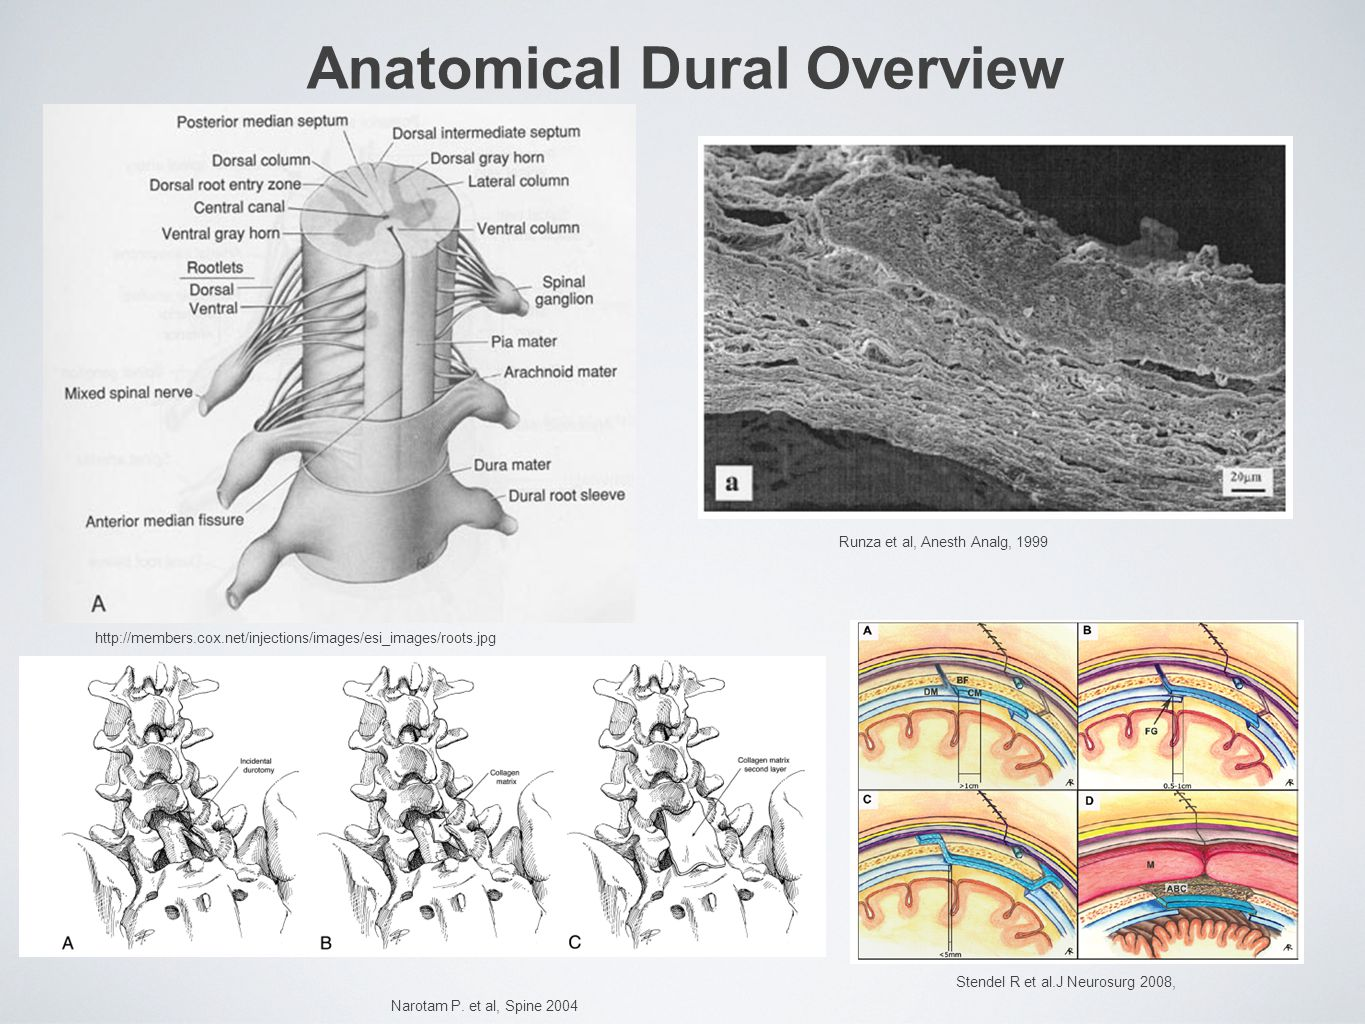 Anatomical Dural Overview